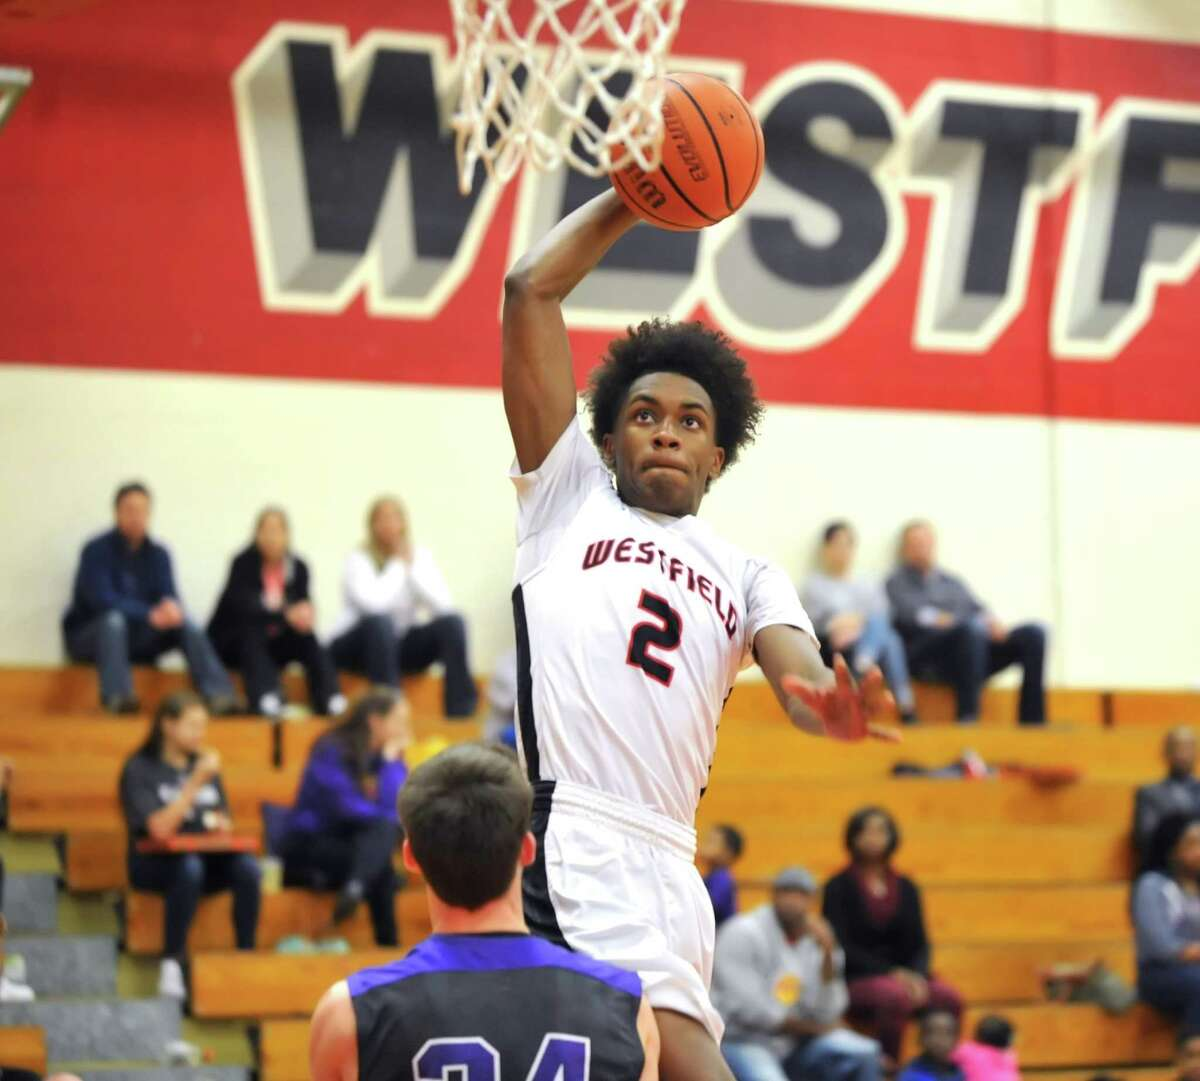 Westfield's Jase Pebres (2) rose high in order to slam dunk the ball in the win over Montgomery.